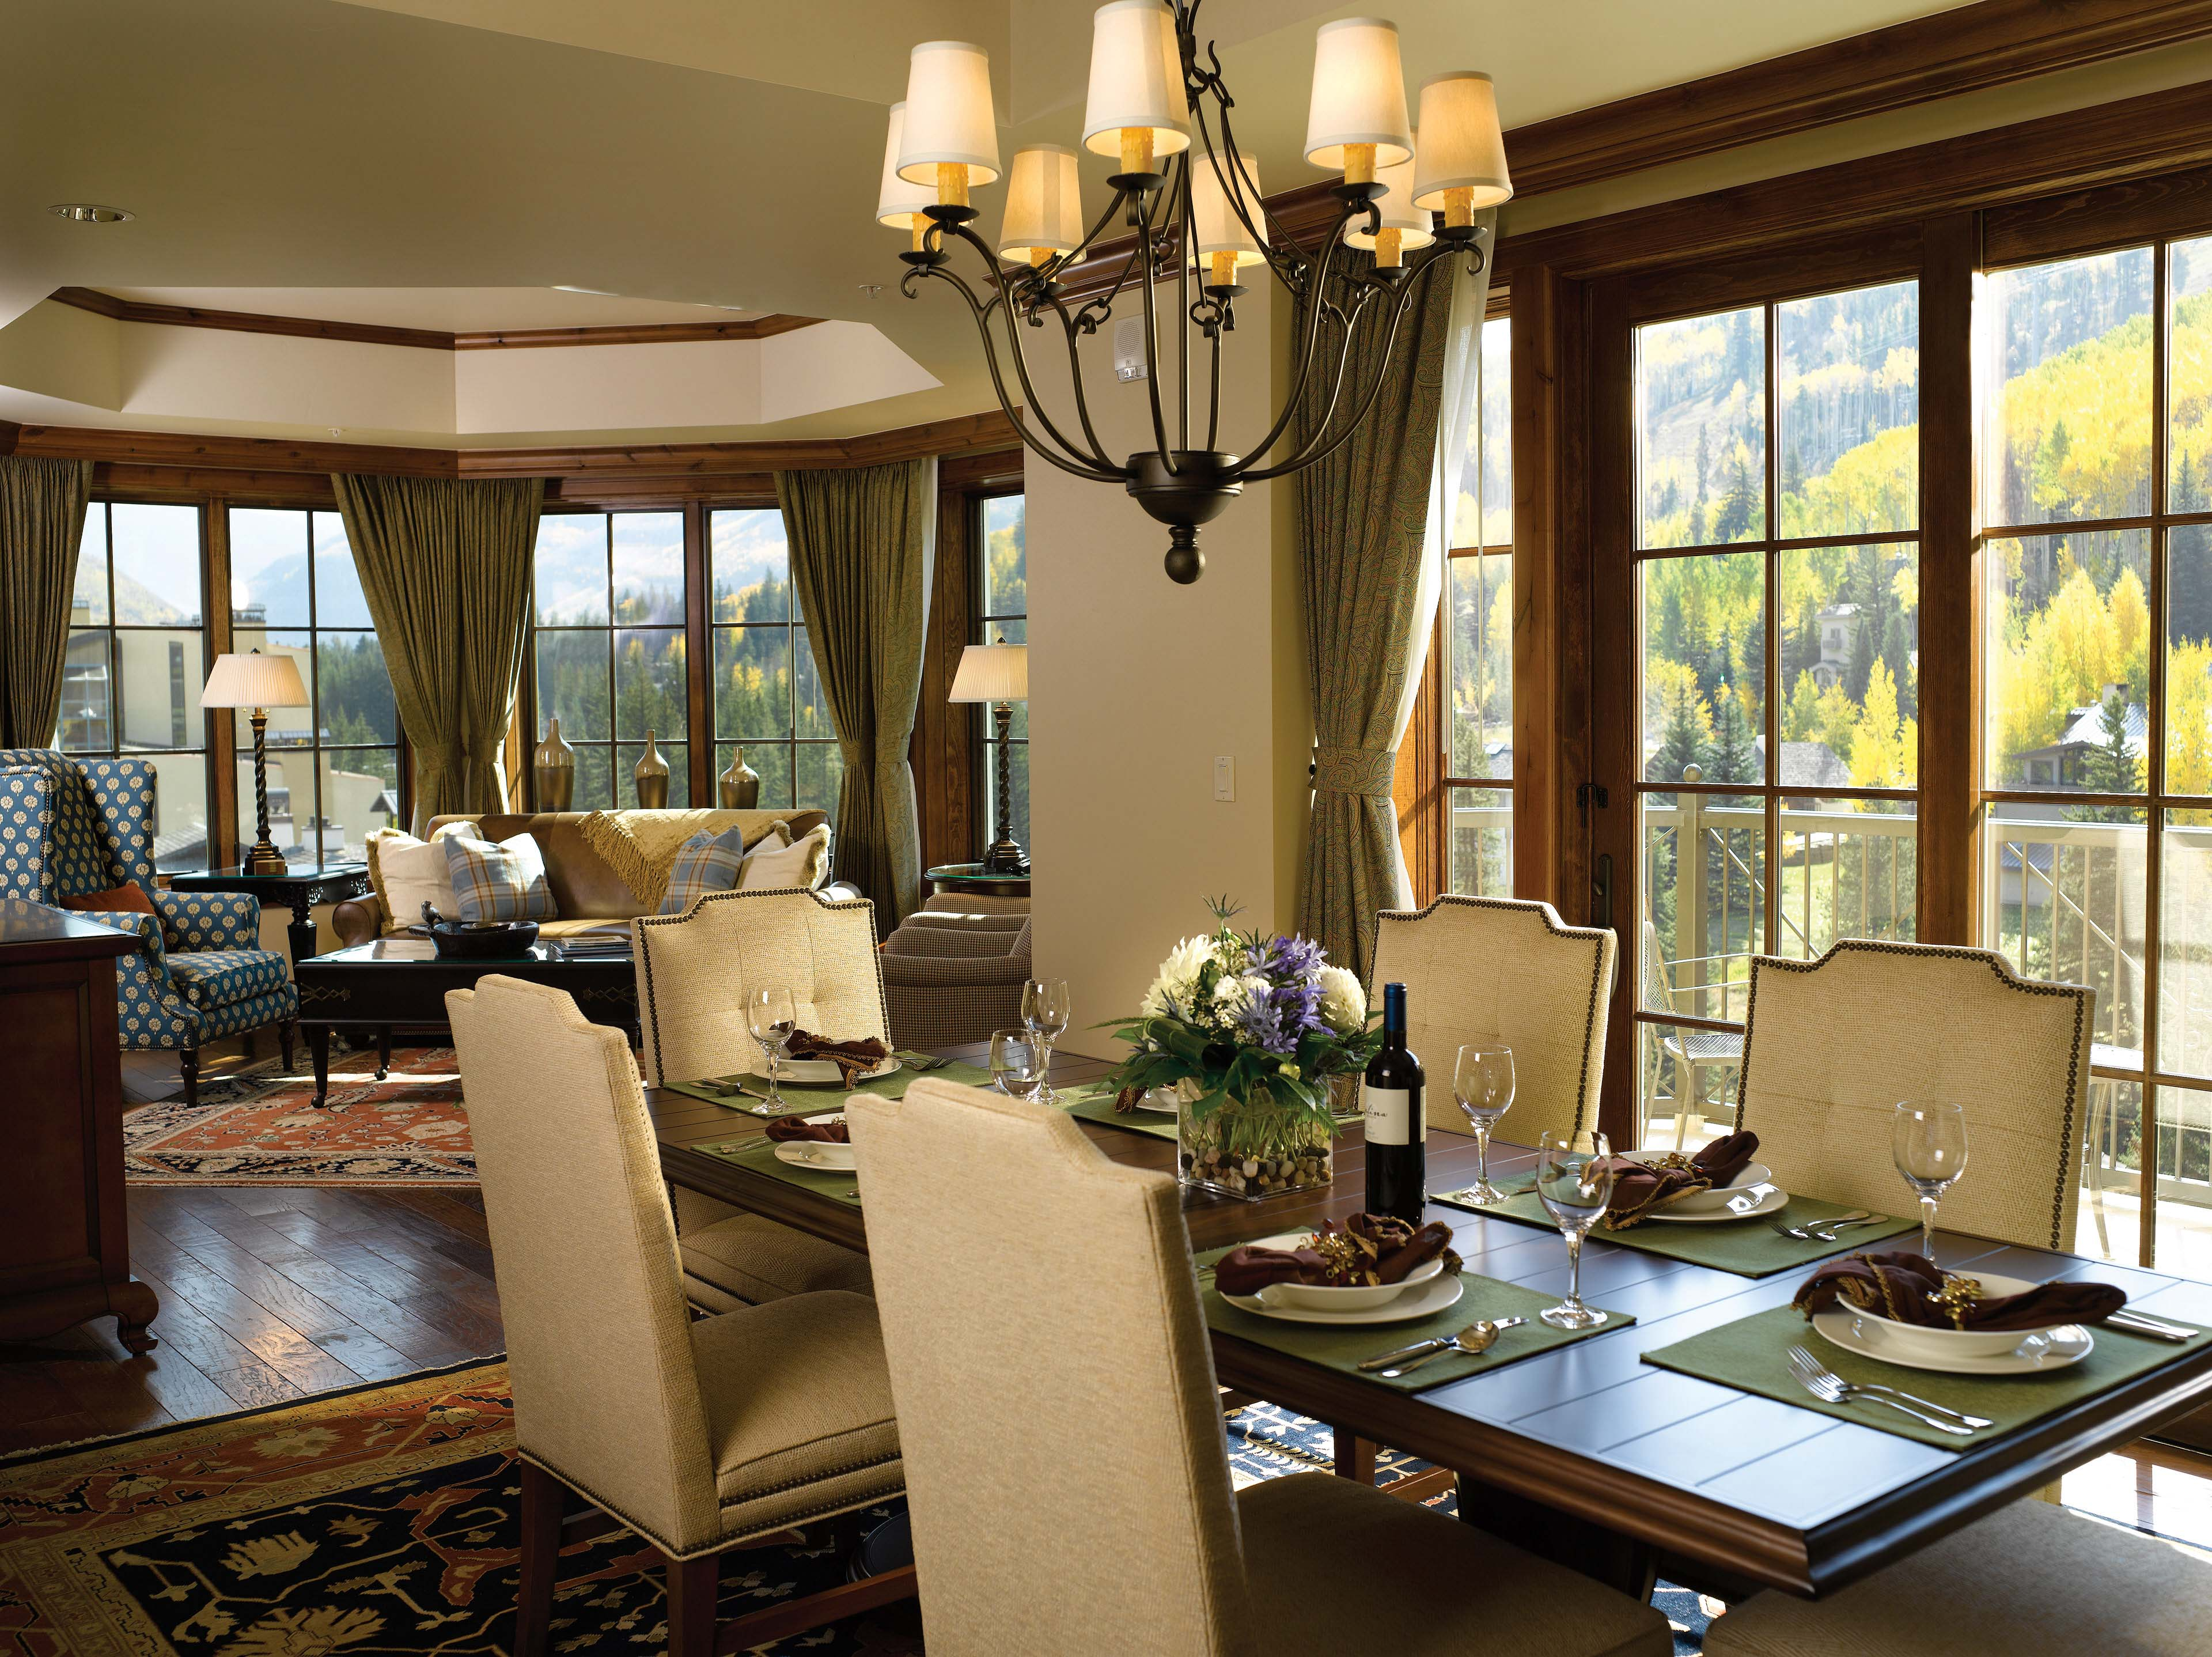 View of a dining table inside of a luxury private residence.